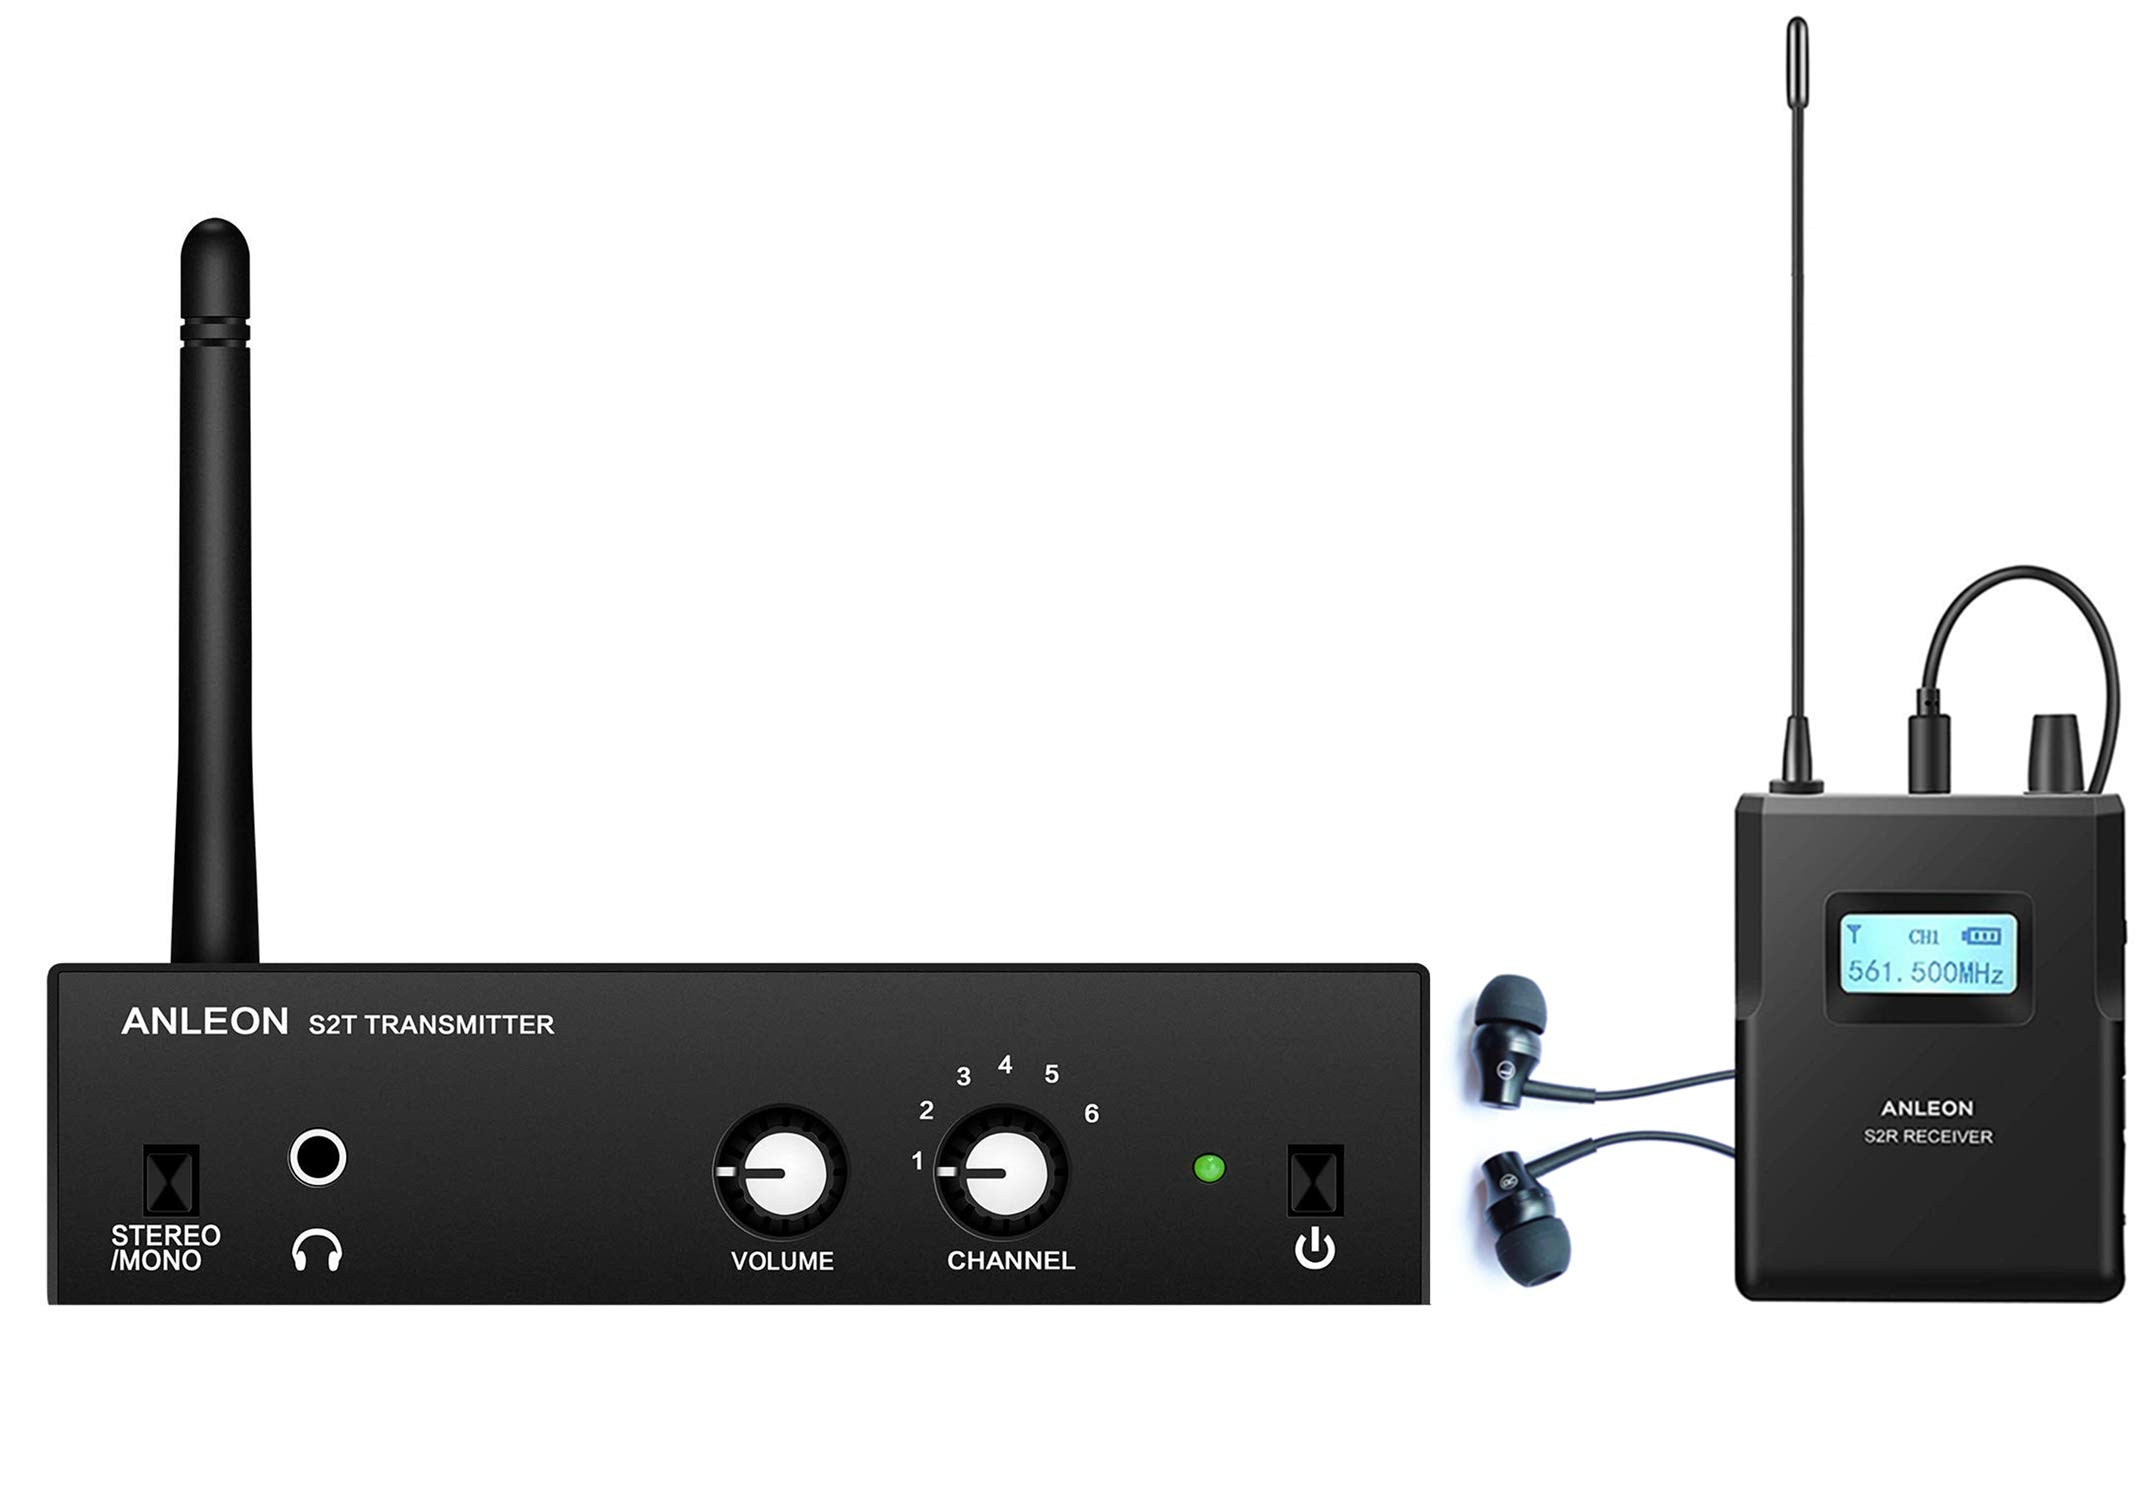 Anleon S2 IEM System Wireless Stereo In-ear Monitor System For Recording Studio Stage Performance 561-568Mhz (1 transmitter 1 receiver)